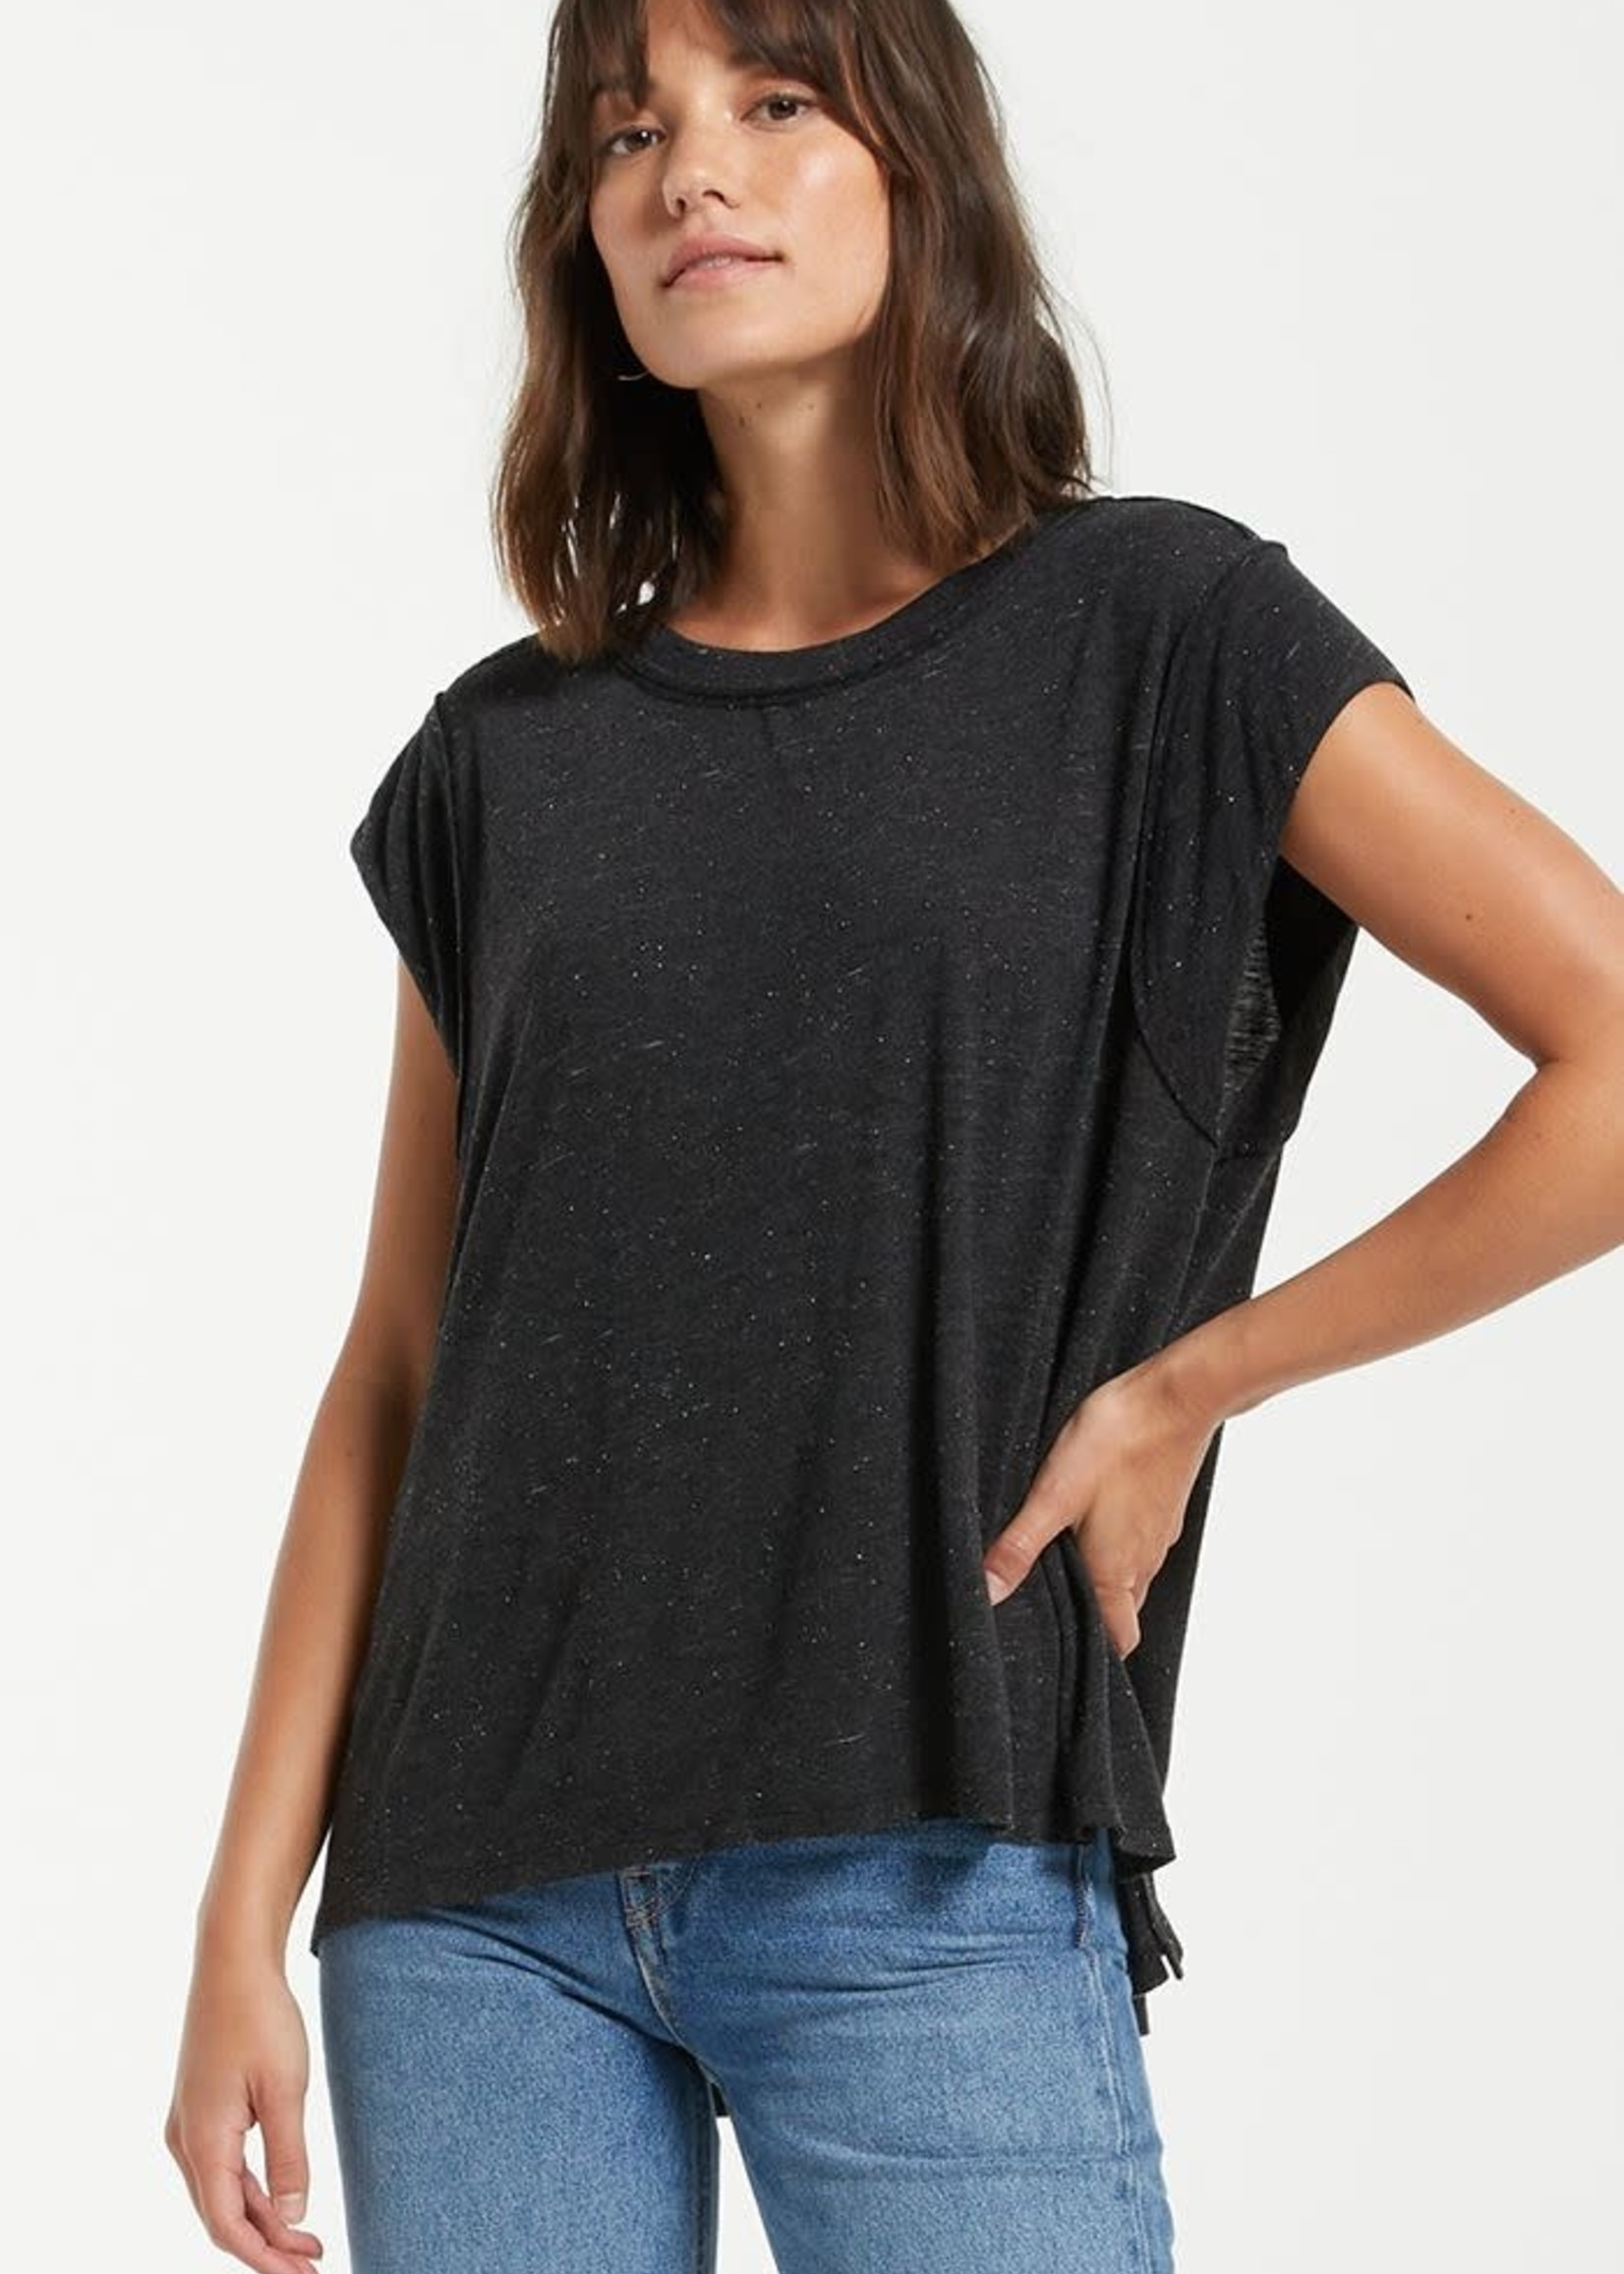 Z Supply Riley Speckle Tee